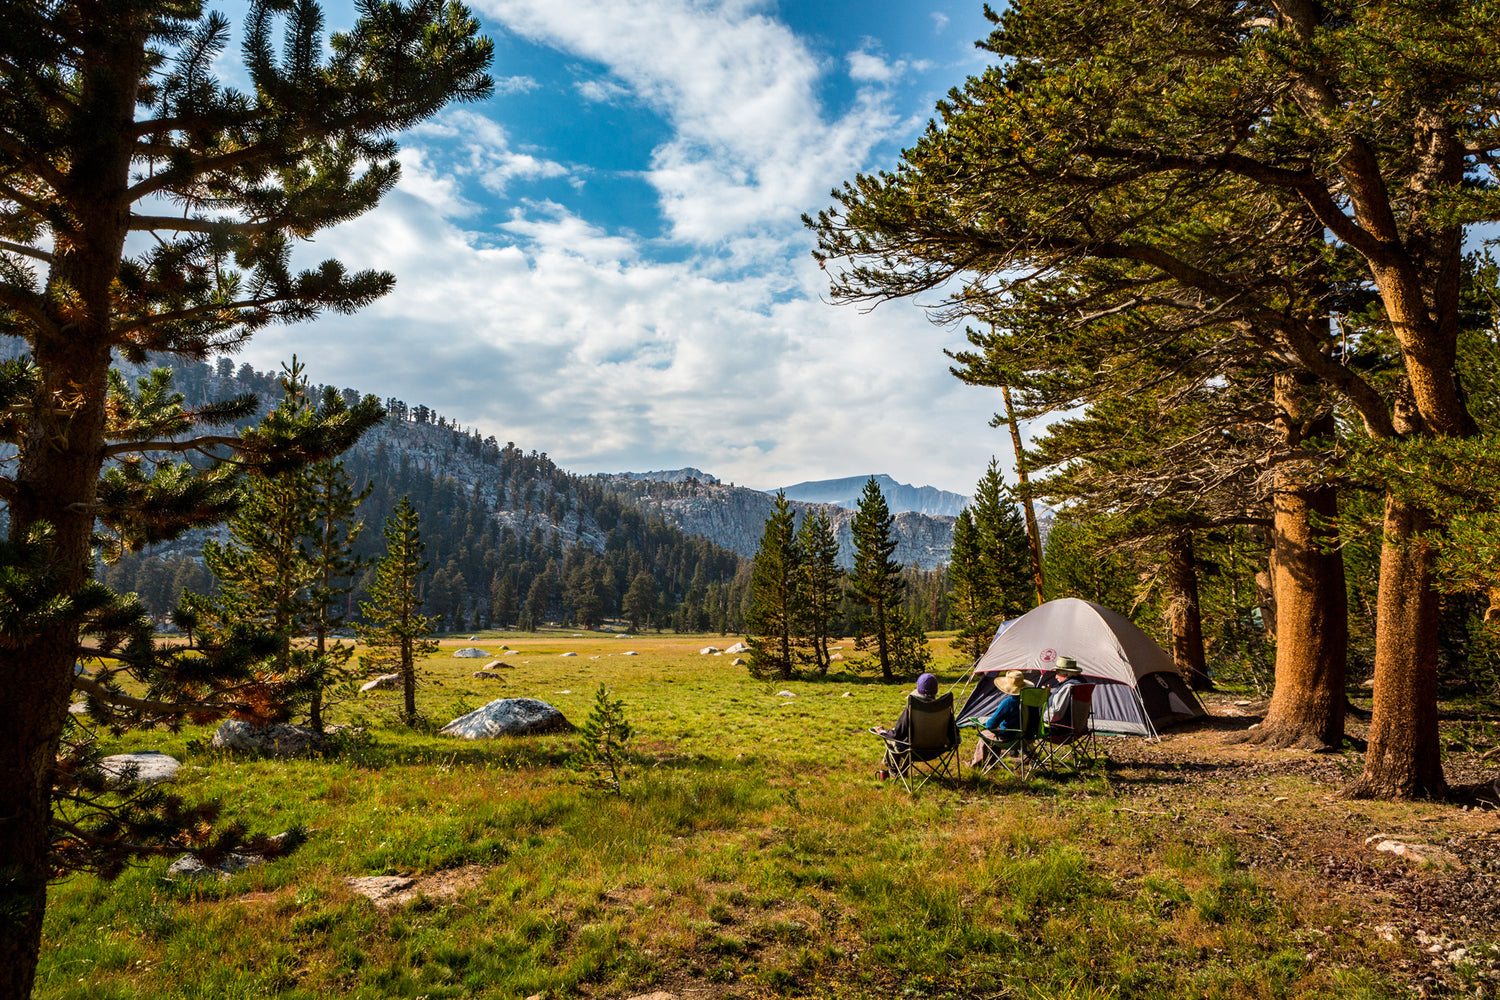 Darling Adventure: Eastern Sierra Wilderness, CA July 9th-12th, 2020